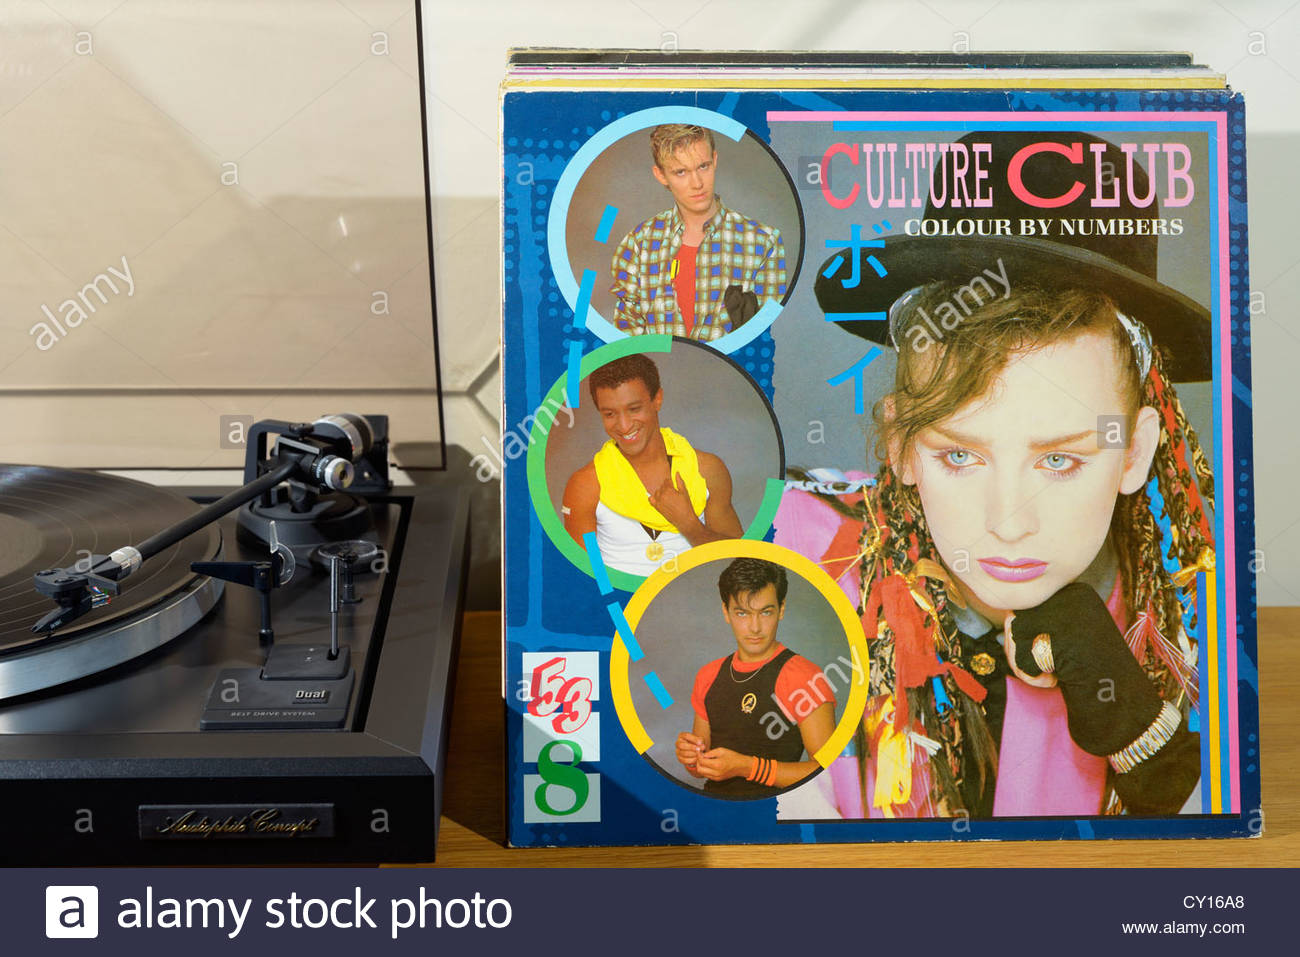 Record Player And Culture Club 2nd Album Colour By Numbers